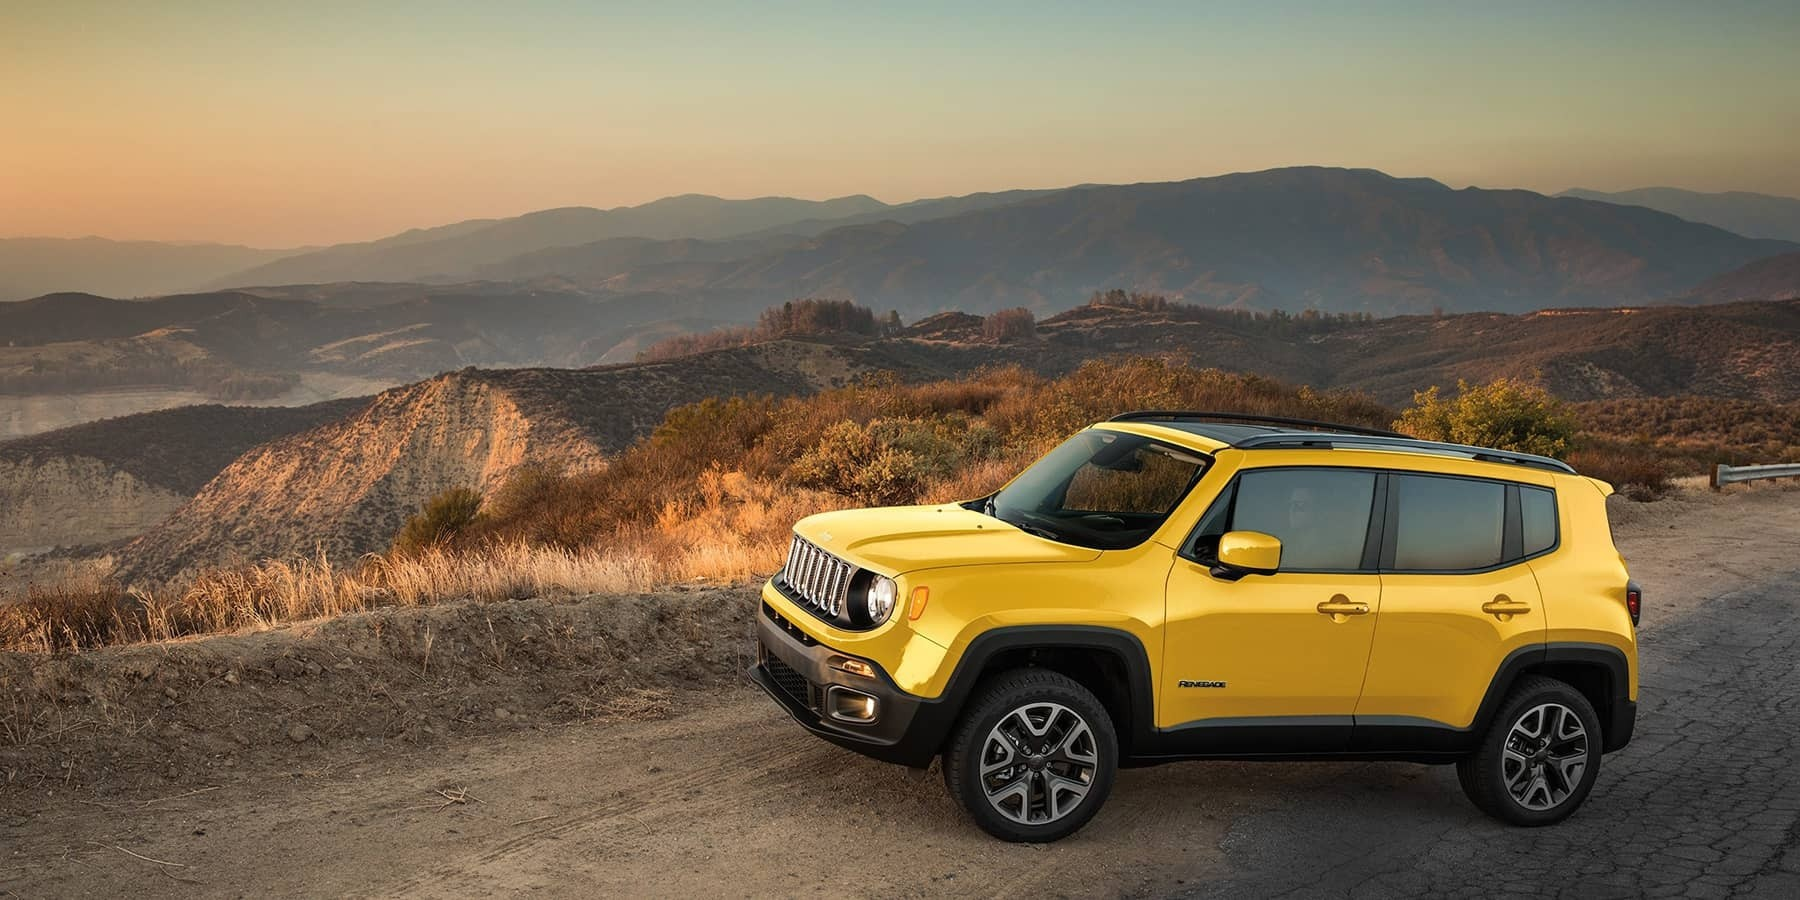 jeep-renegade-outdoors